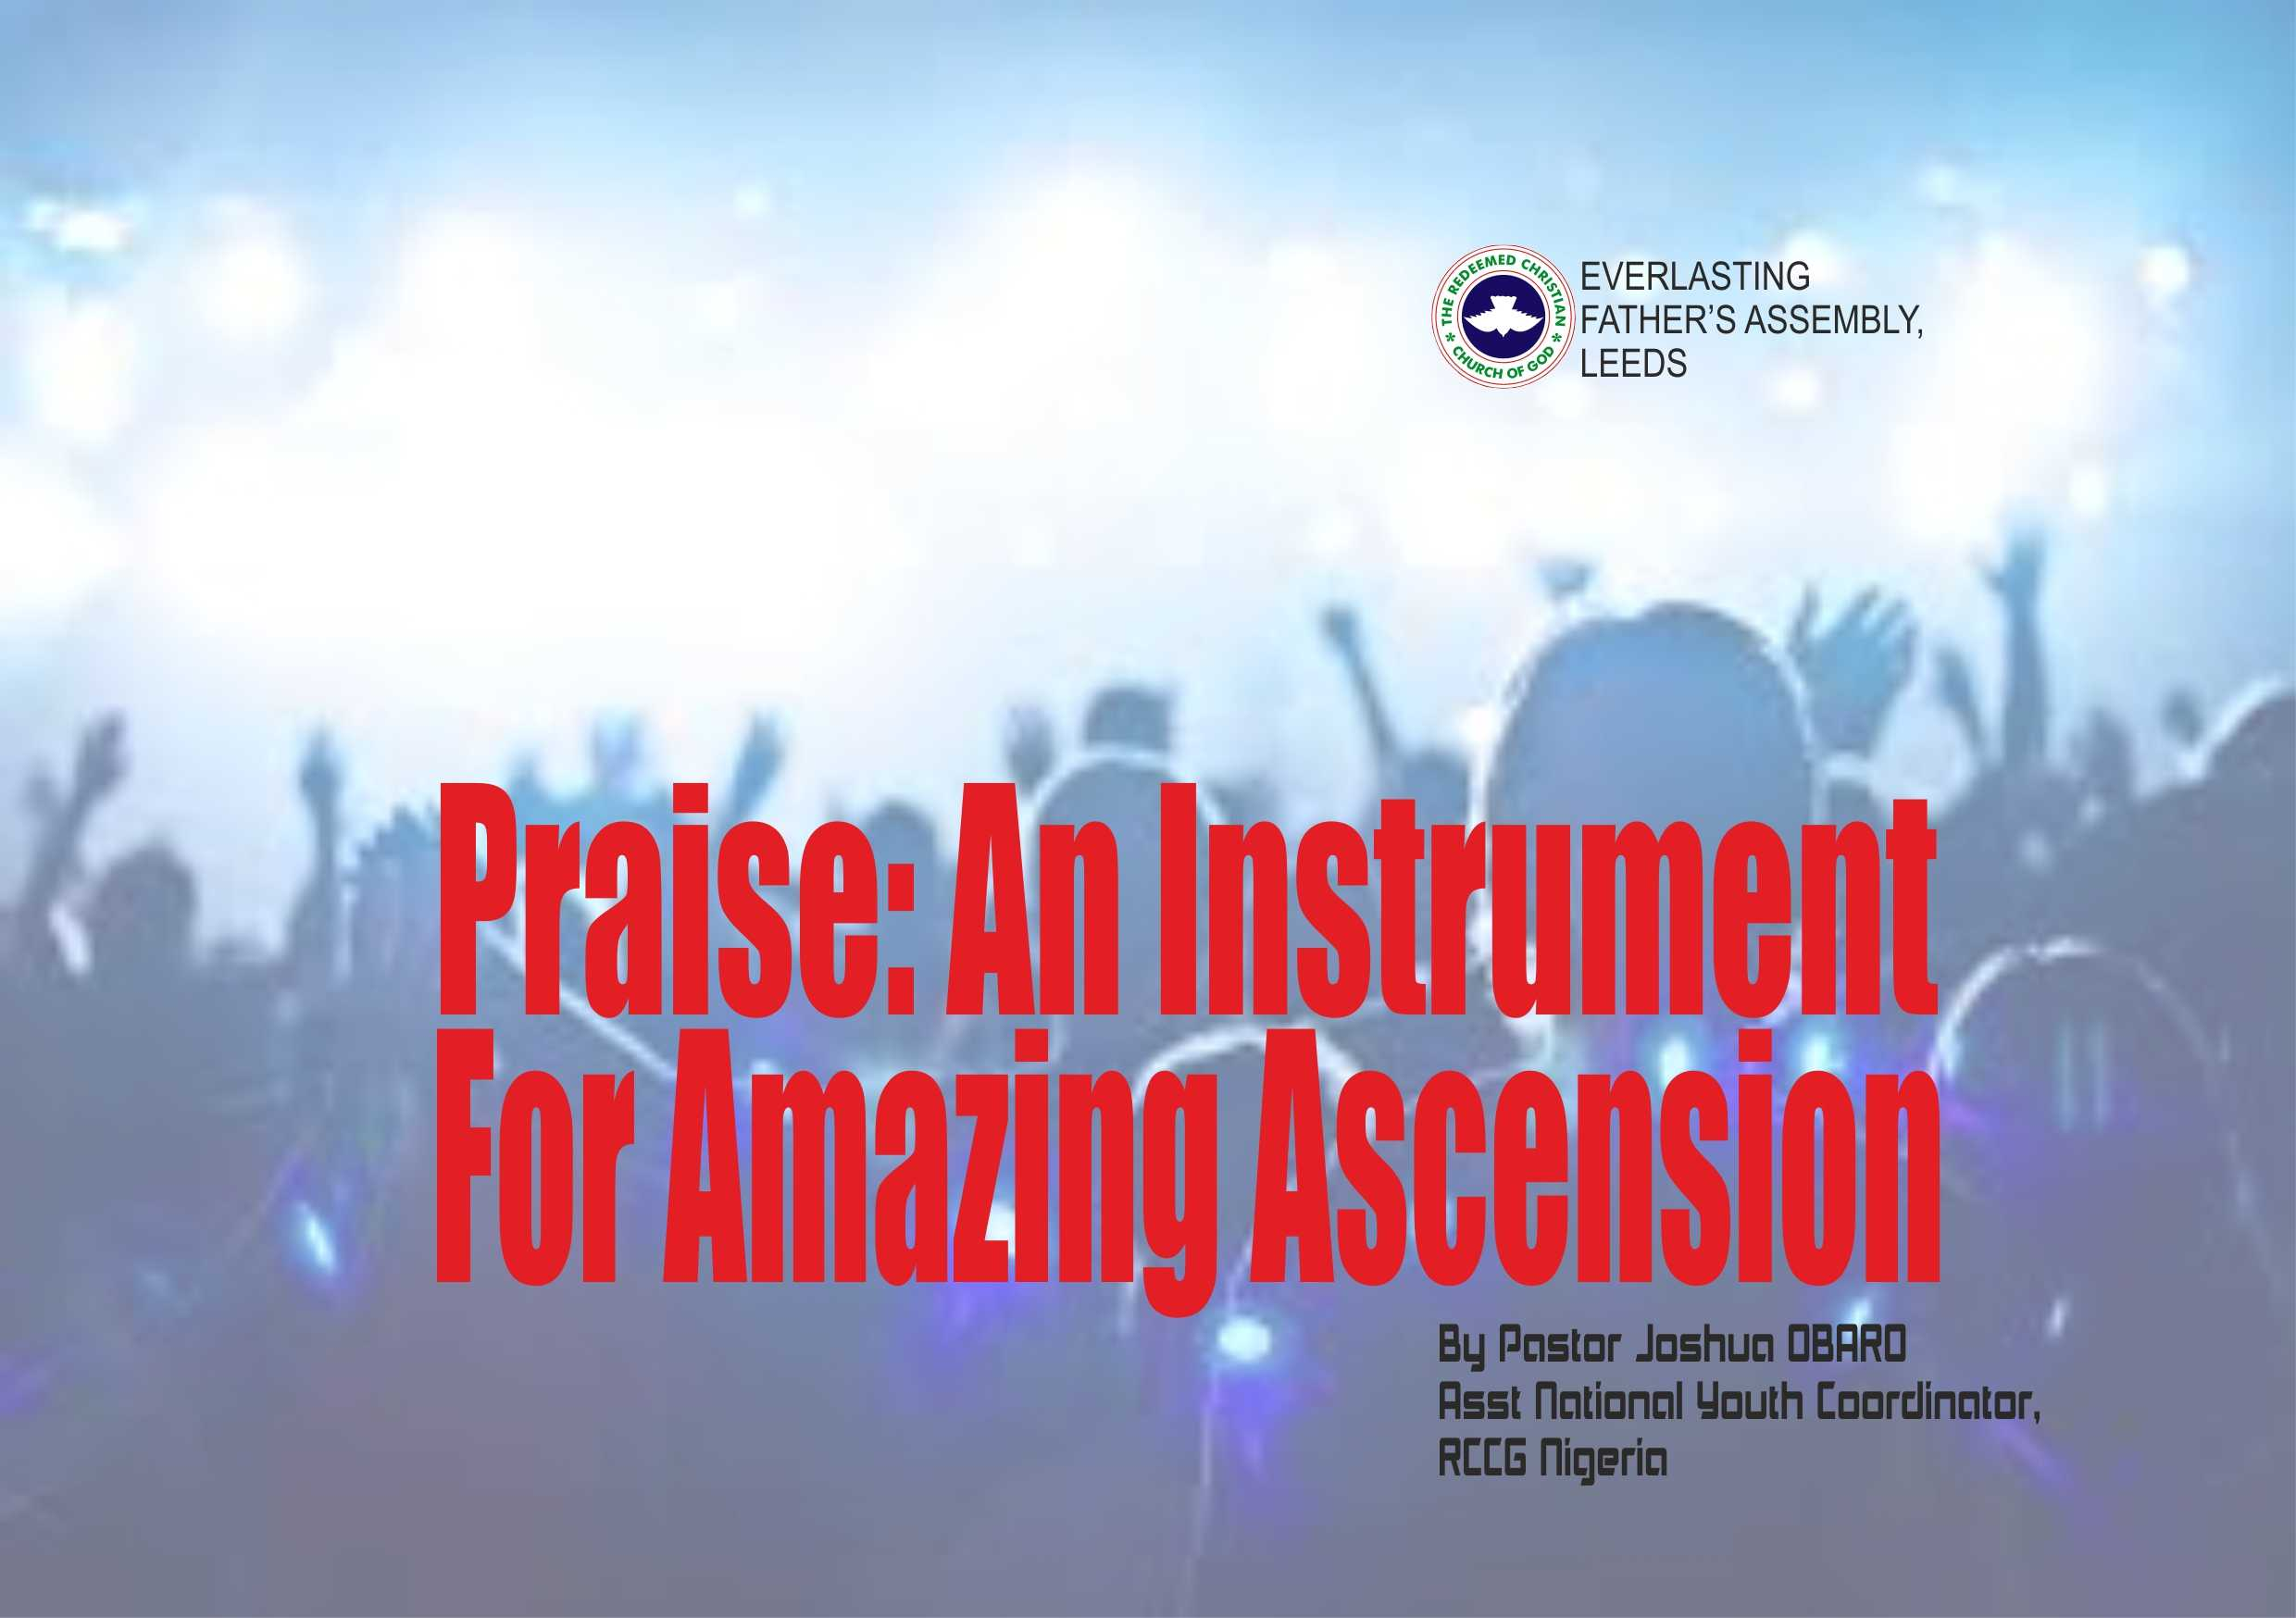 Praise: An Instrument For Amazing Ascension, by Pastor Joshua Obaro